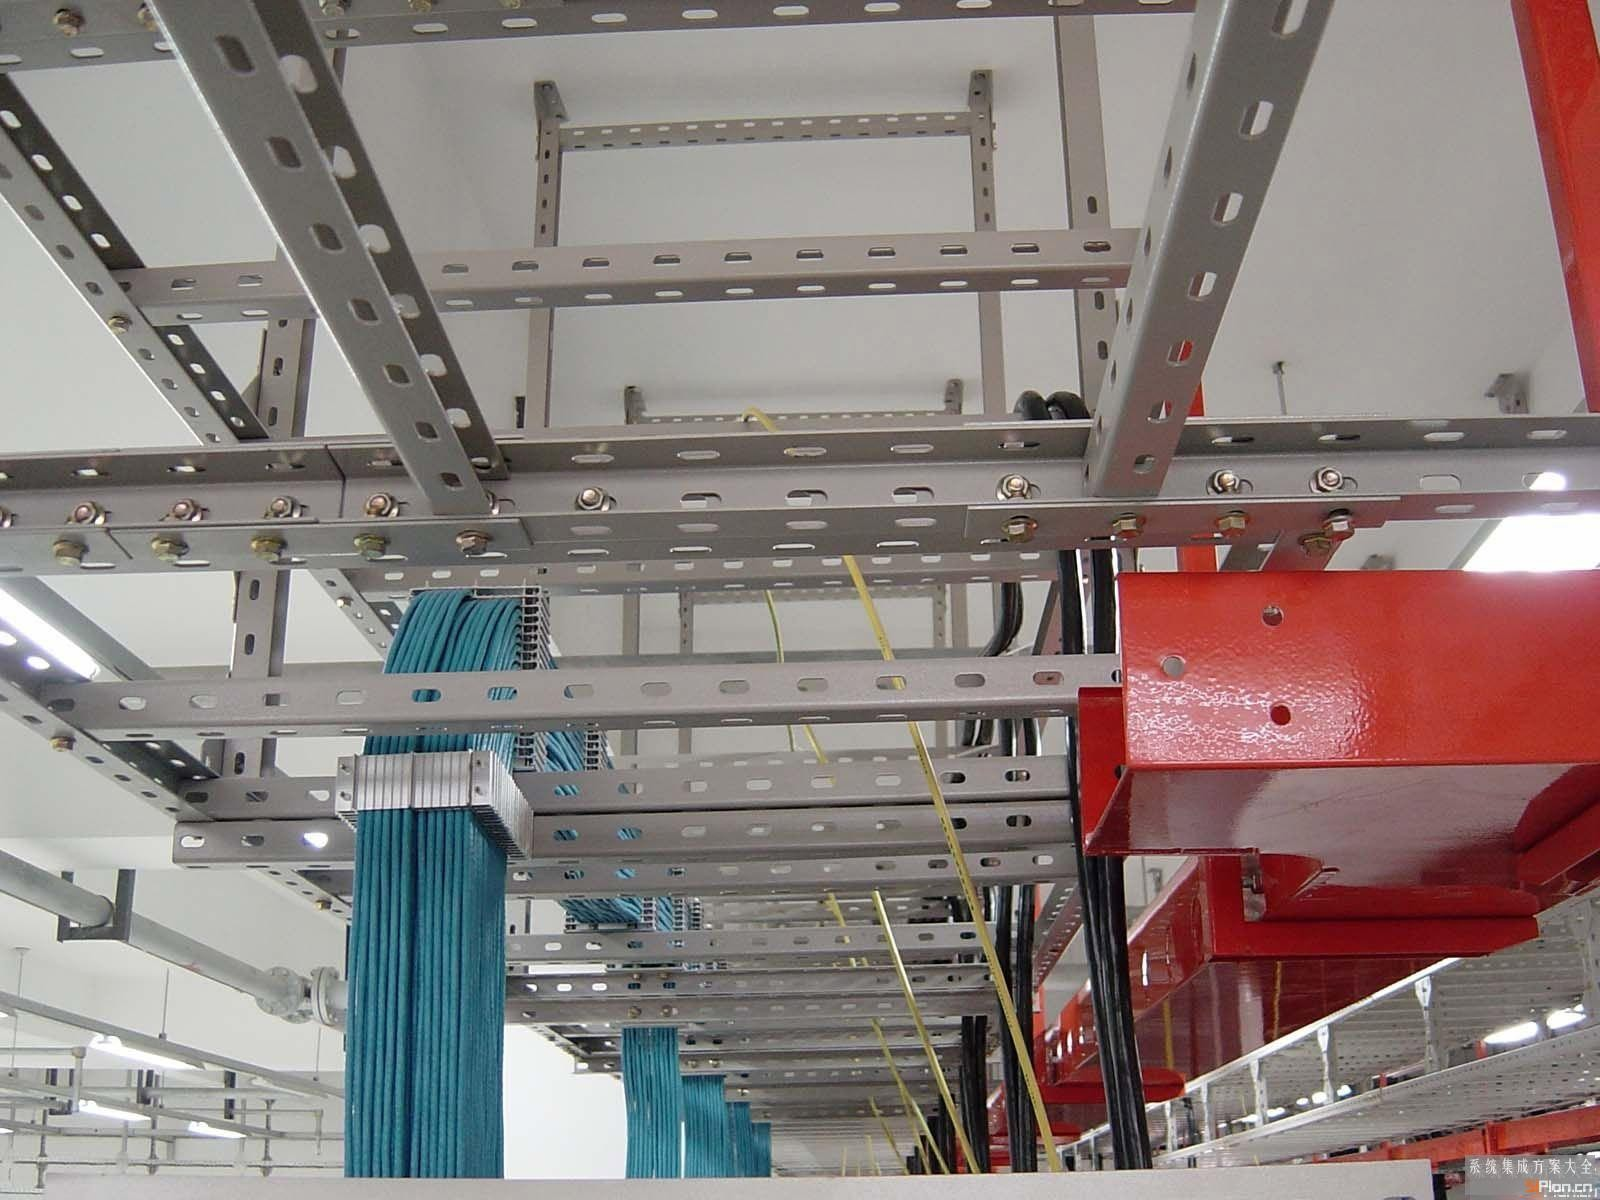 Machine Room Ceiling Rack